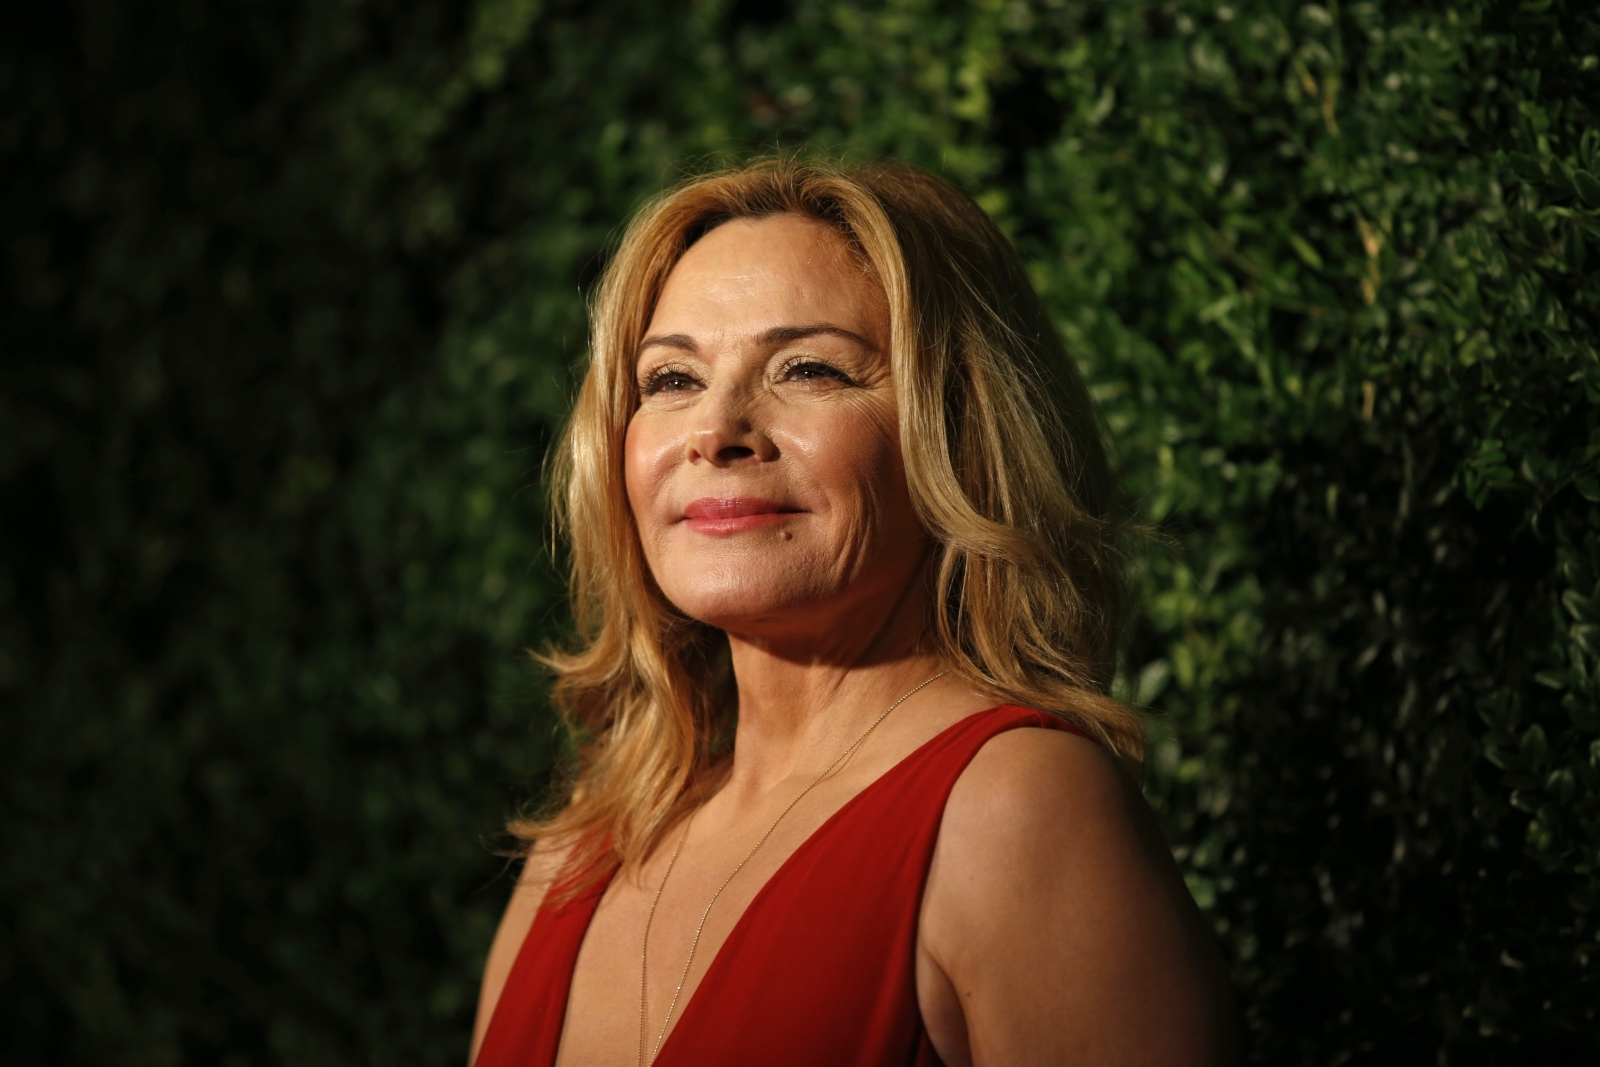 Kim Cattrall has 'never been friends' with 'Sex and the City' co-stars